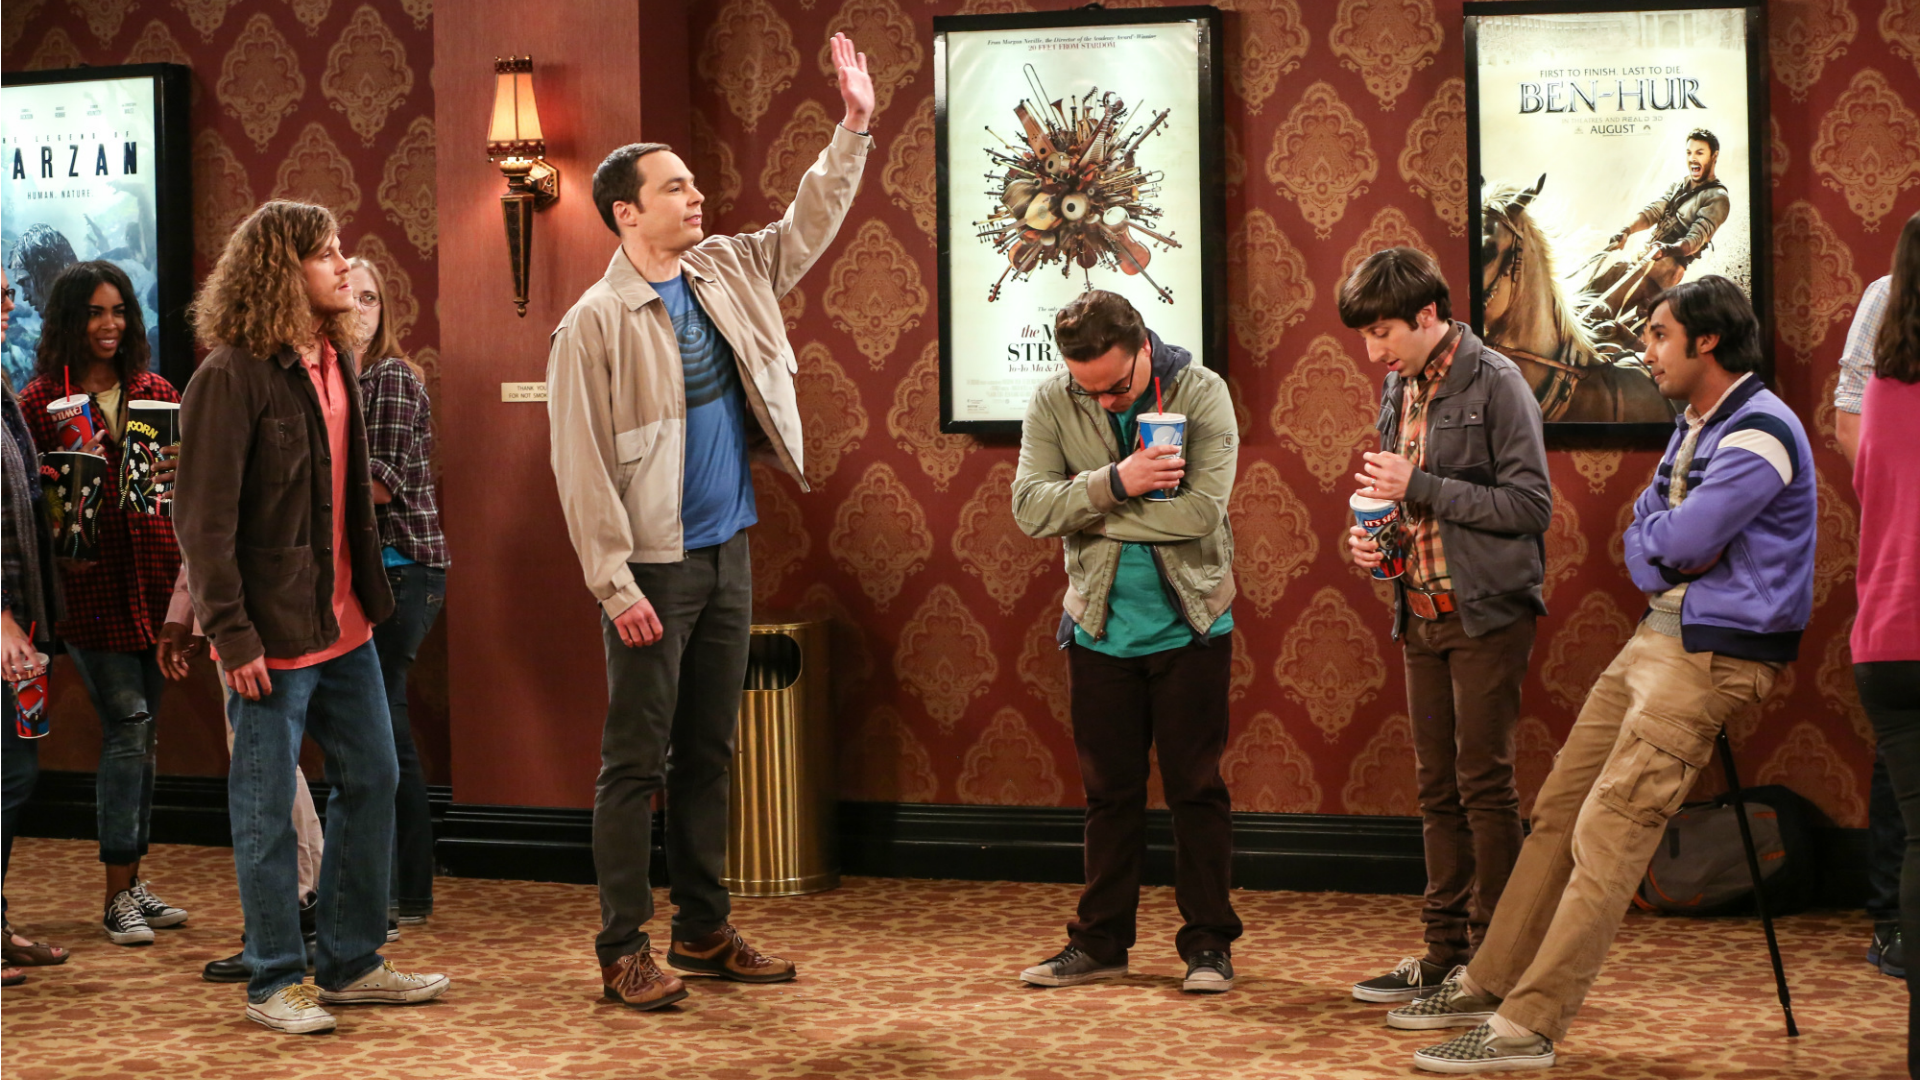 Sheldon embarrasses his friends after an in-line altercation.